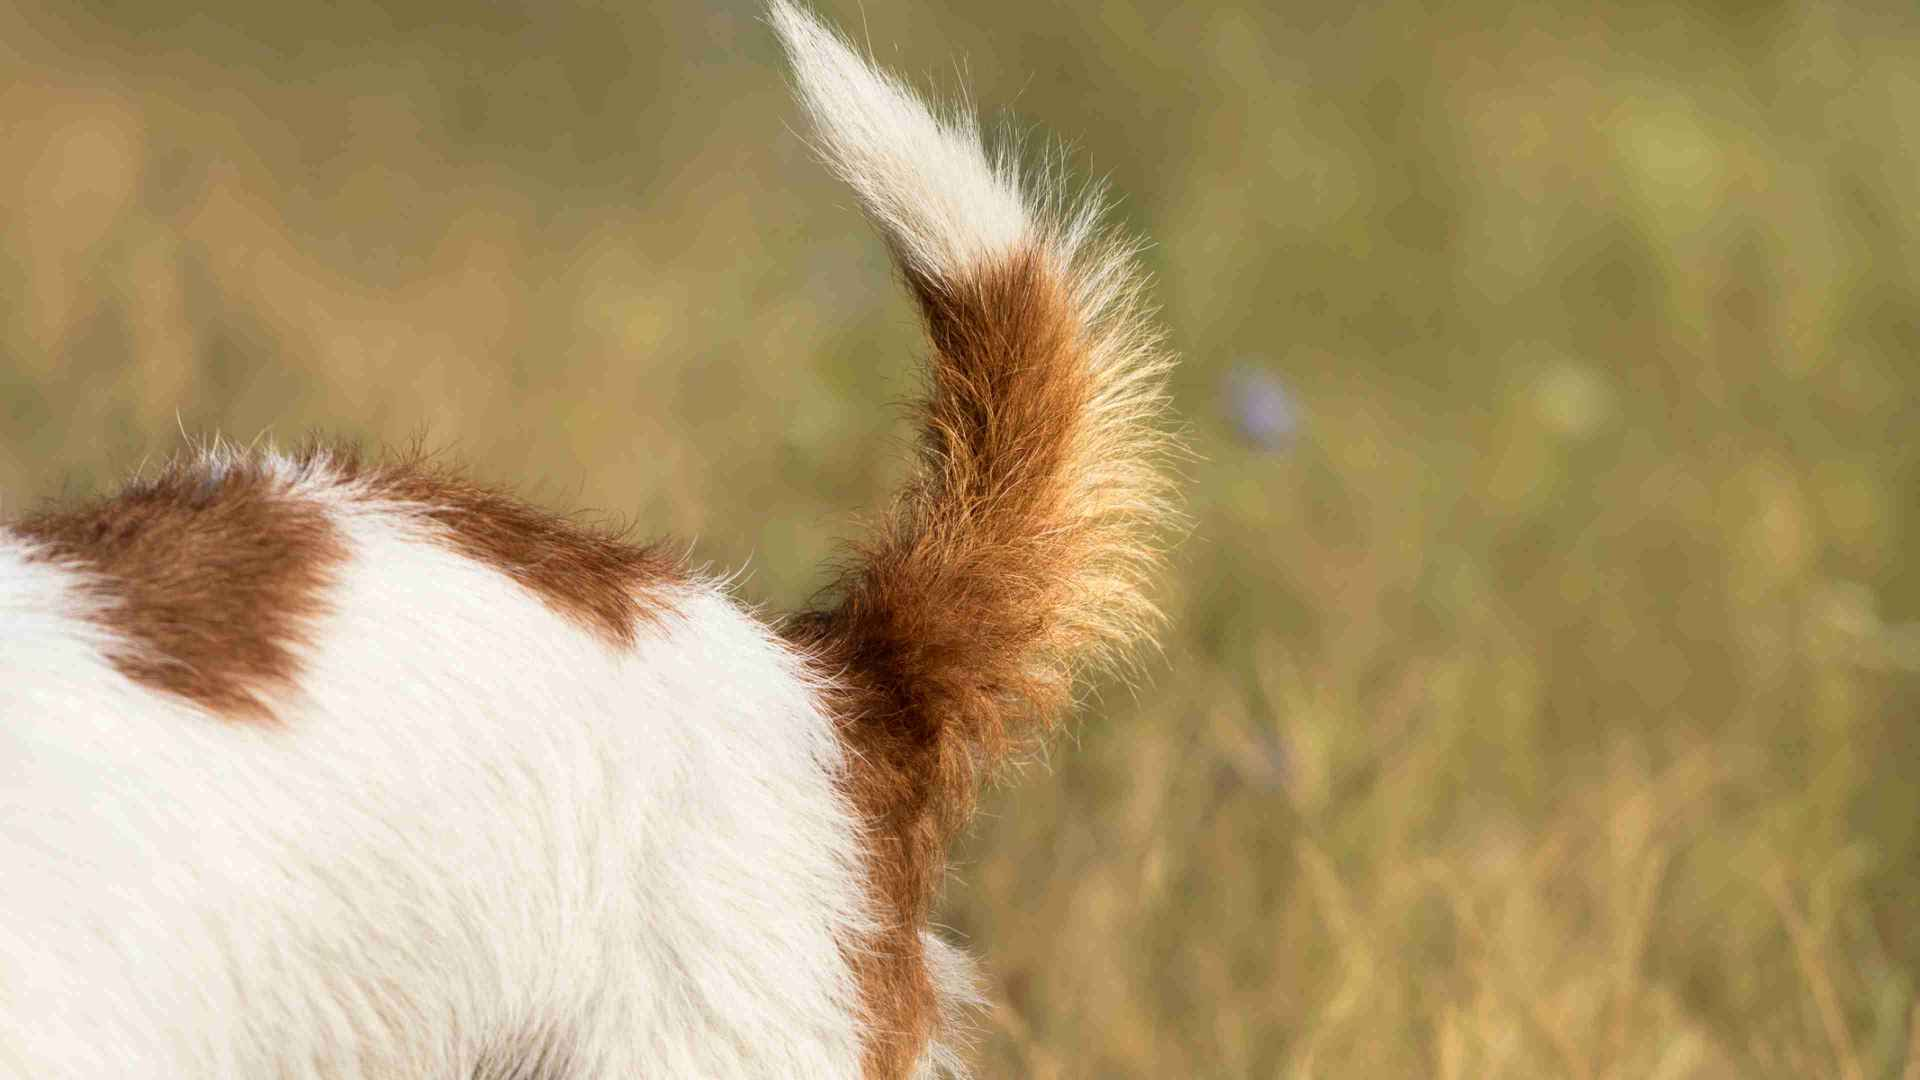 A dog's furry tail